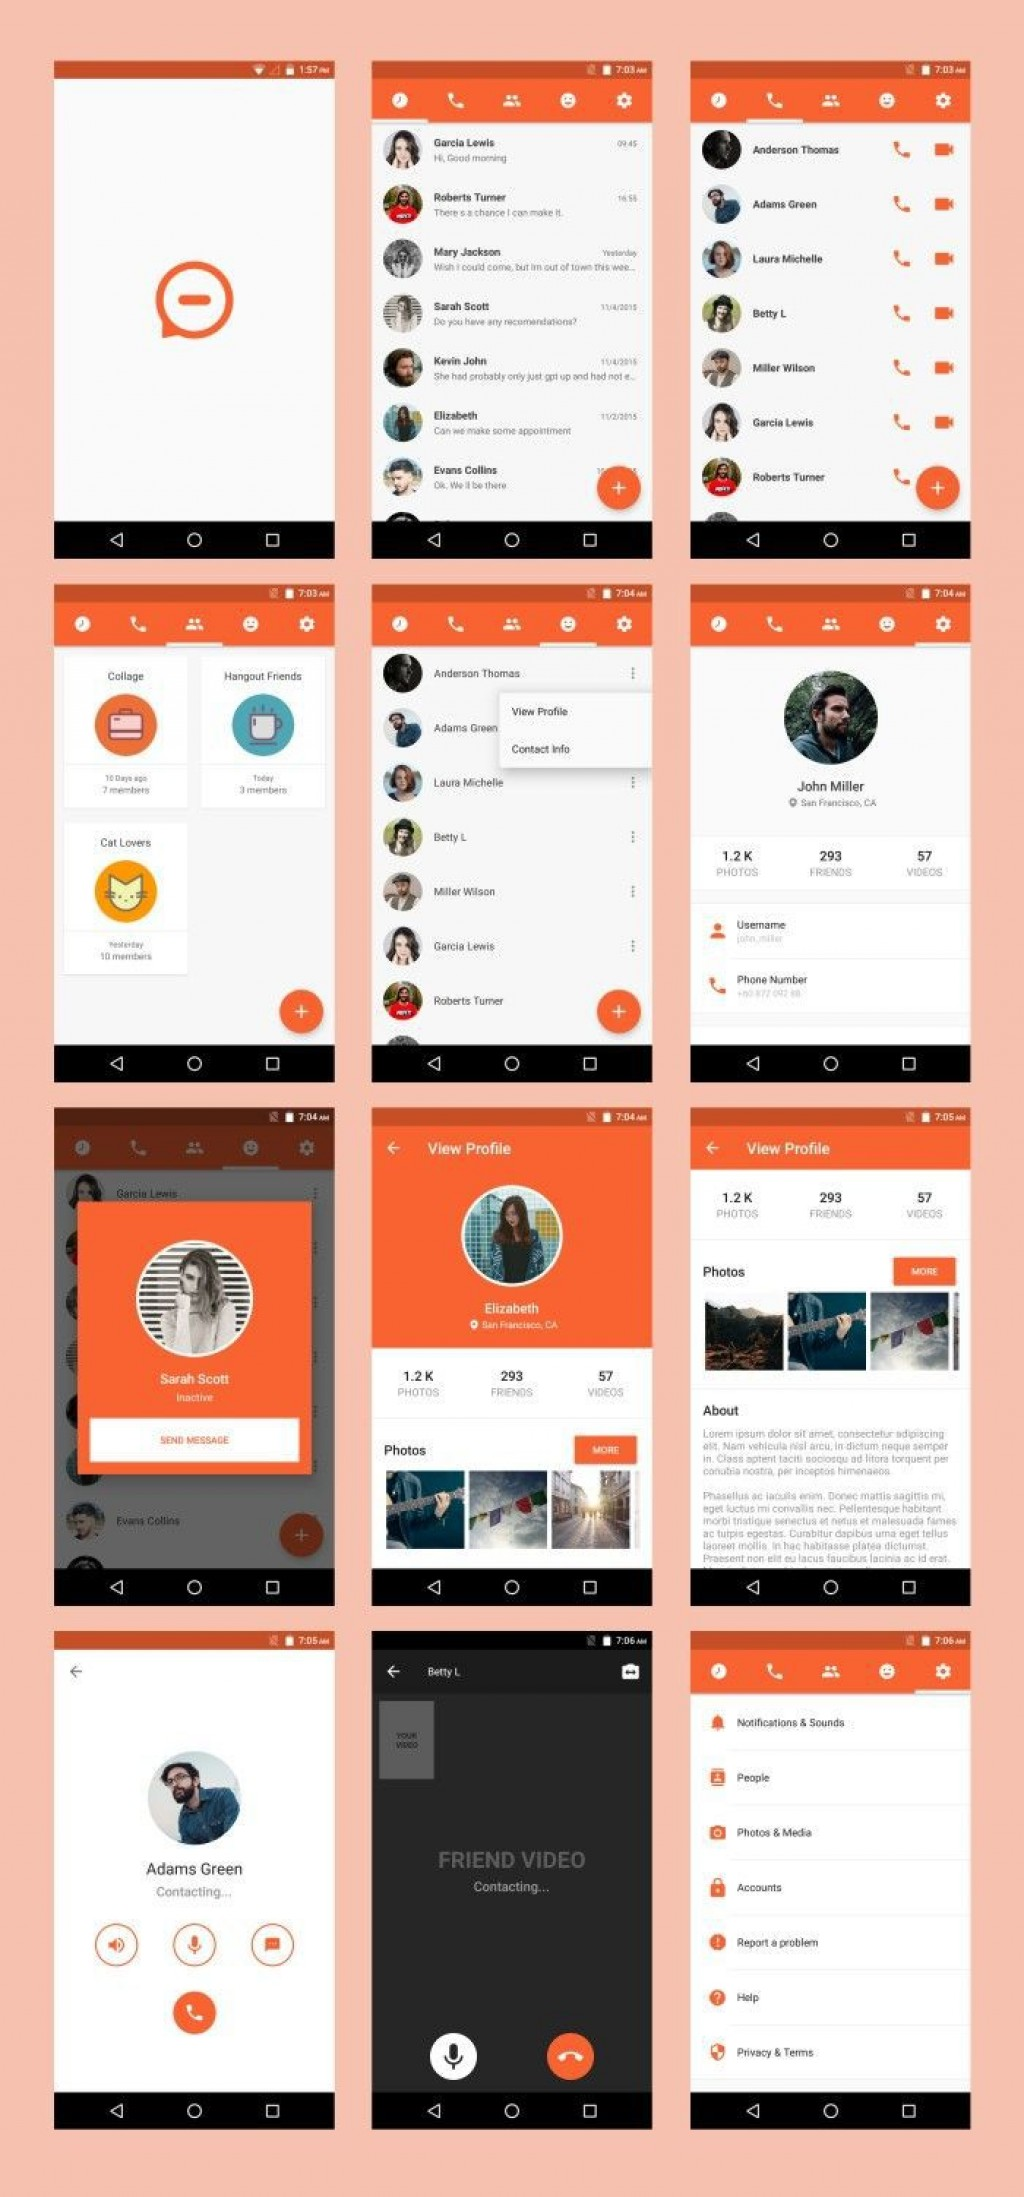 005 Surprising Android App Design Template High Def  Free Sketch UiLarge